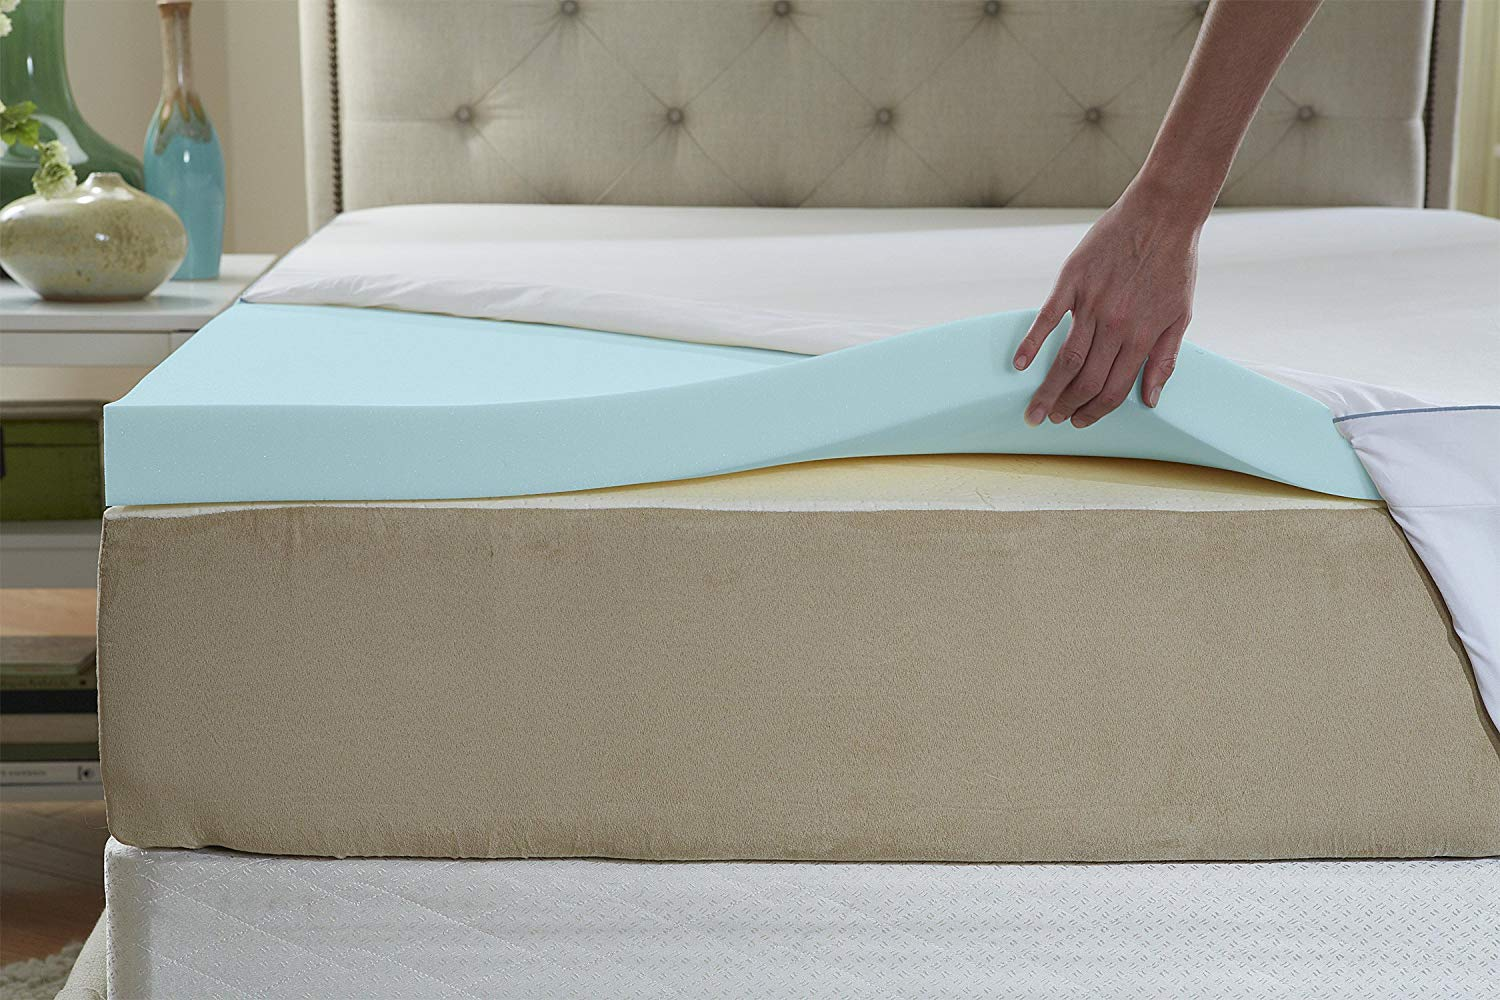 Natures Sleep best cooling mattress padreview and buying guide by www.dailysleep.org